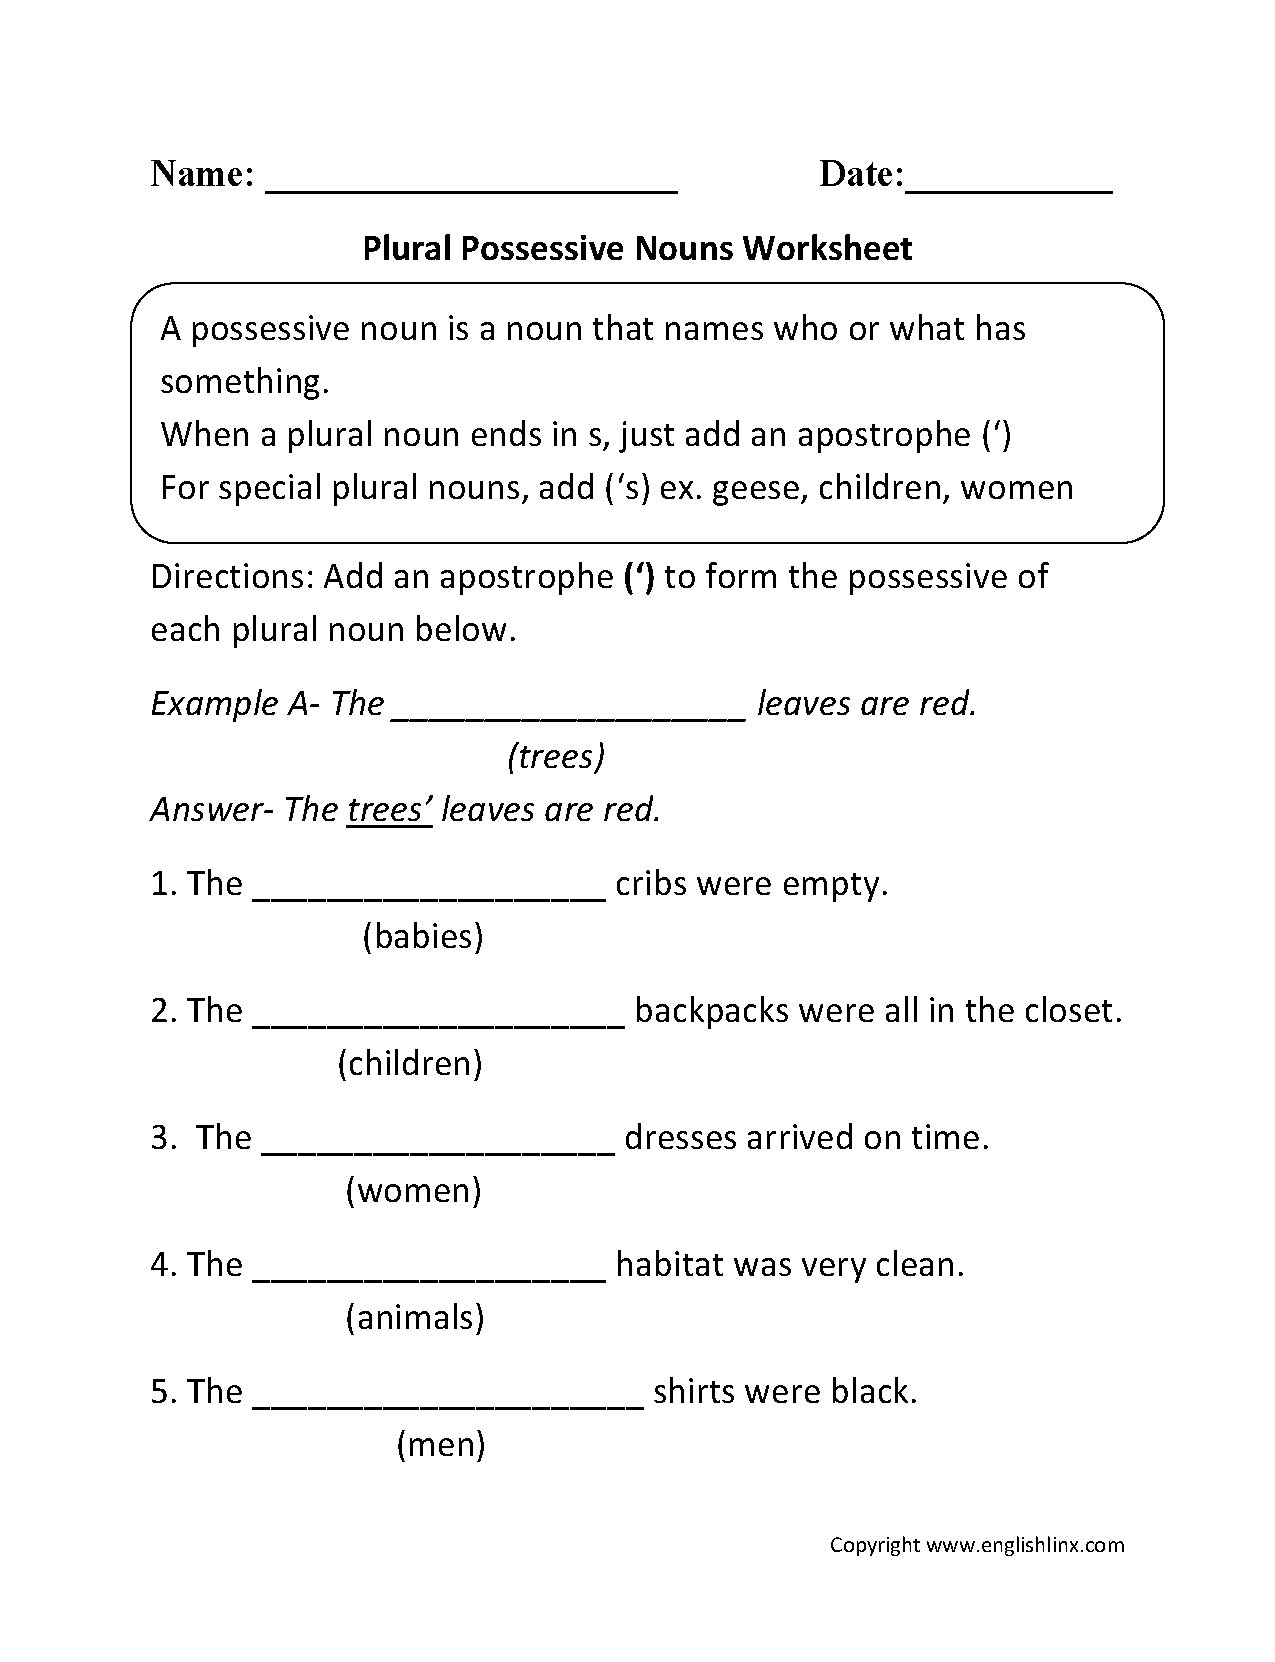 Aldiablosus  Personable Nouns Worksheets  Possessive Nouns Worksheets With Foxy Possessive Nouns Worksheets With Lovely Square And Cube Roots Worksheet Also Polarity Of Molecules Worksheet Answers In Addition Polarity Worksheet And Pictograph Worksheets As Well As Molecular Geometry Worksheet Additionally Simple Machines And Mechanical Advantage Worksheet Answers From Englishlinxcom With Aldiablosus  Foxy Nouns Worksheets  Possessive Nouns Worksheets With Lovely Possessive Nouns Worksheets And Personable Square And Cube Roots Worksheet Also Polarity Of Molecules Worksheet Answers In Addition Polarity Worksheet From Englishlinxcom